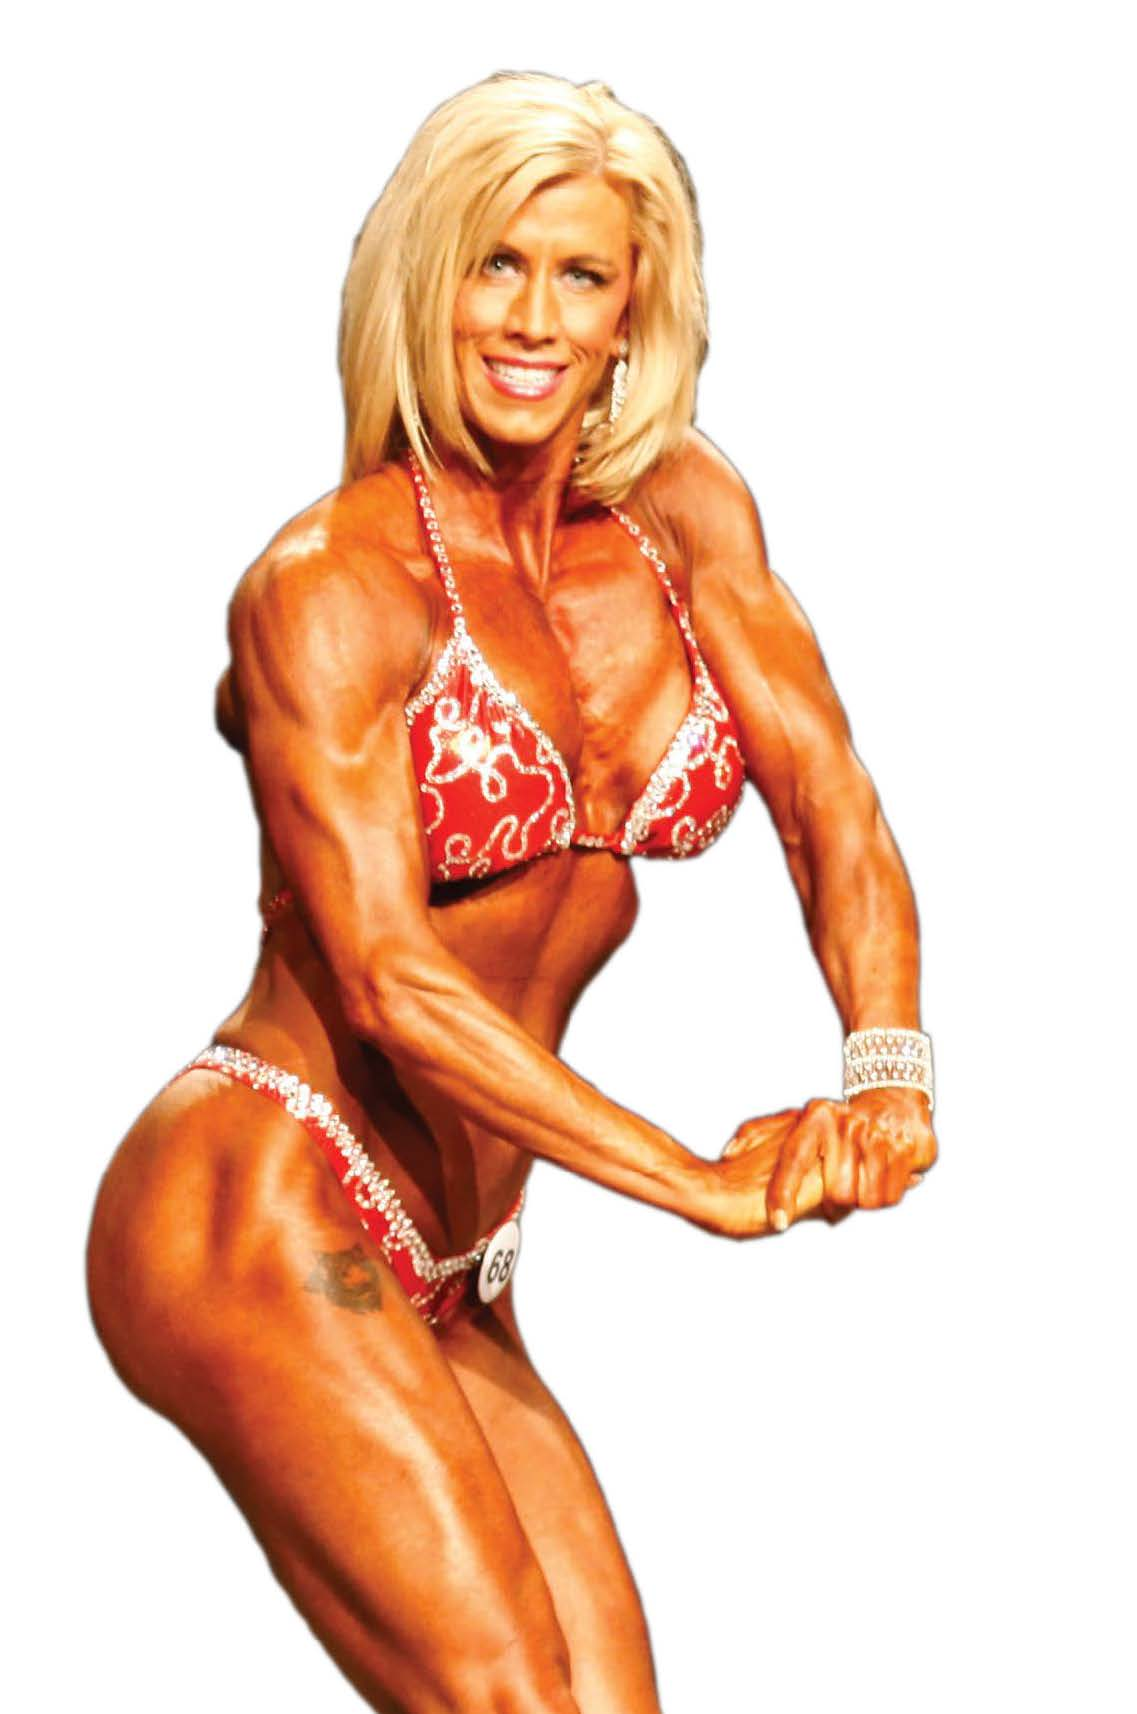 Lose Weight, Gain Muscle Become Healthier, Compete - My Story